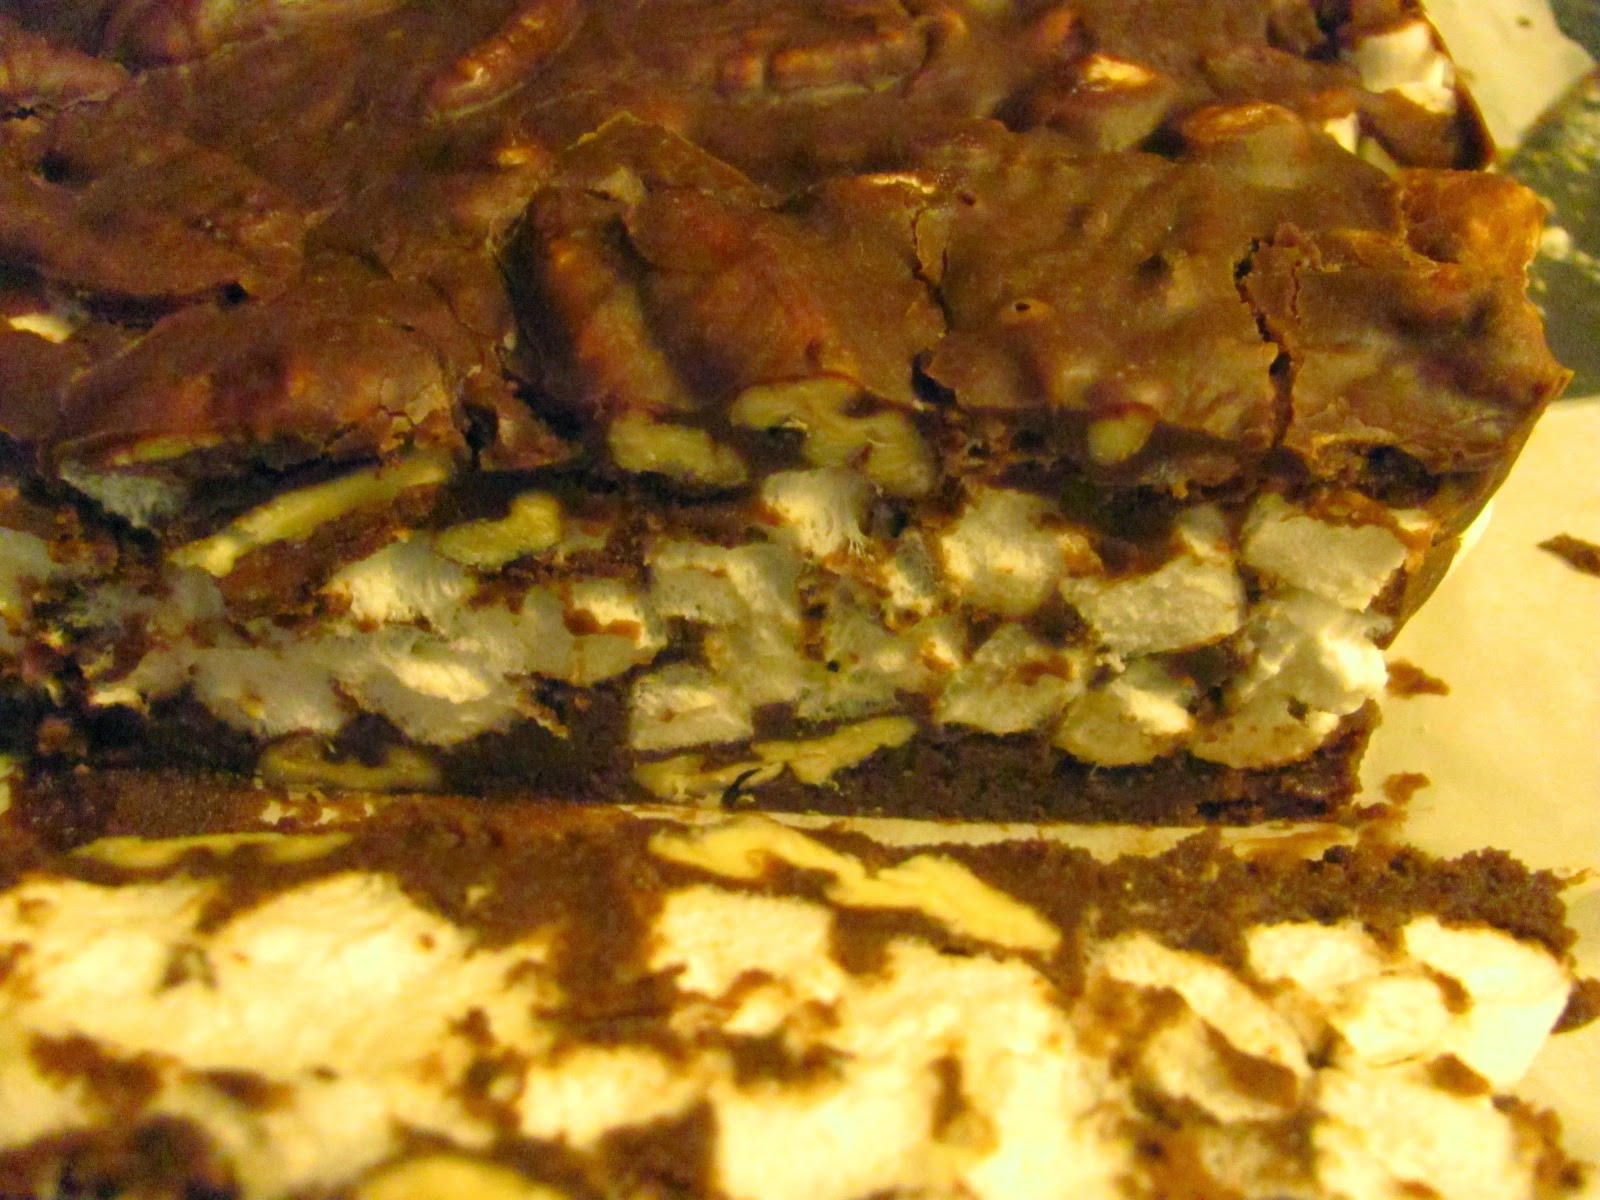 https://louanneskitchen.wordpress.com/2011/12/15/heavenly-hash-aka-rocky-road-fudge12-weeks-of-christmas-cookies-sweets/